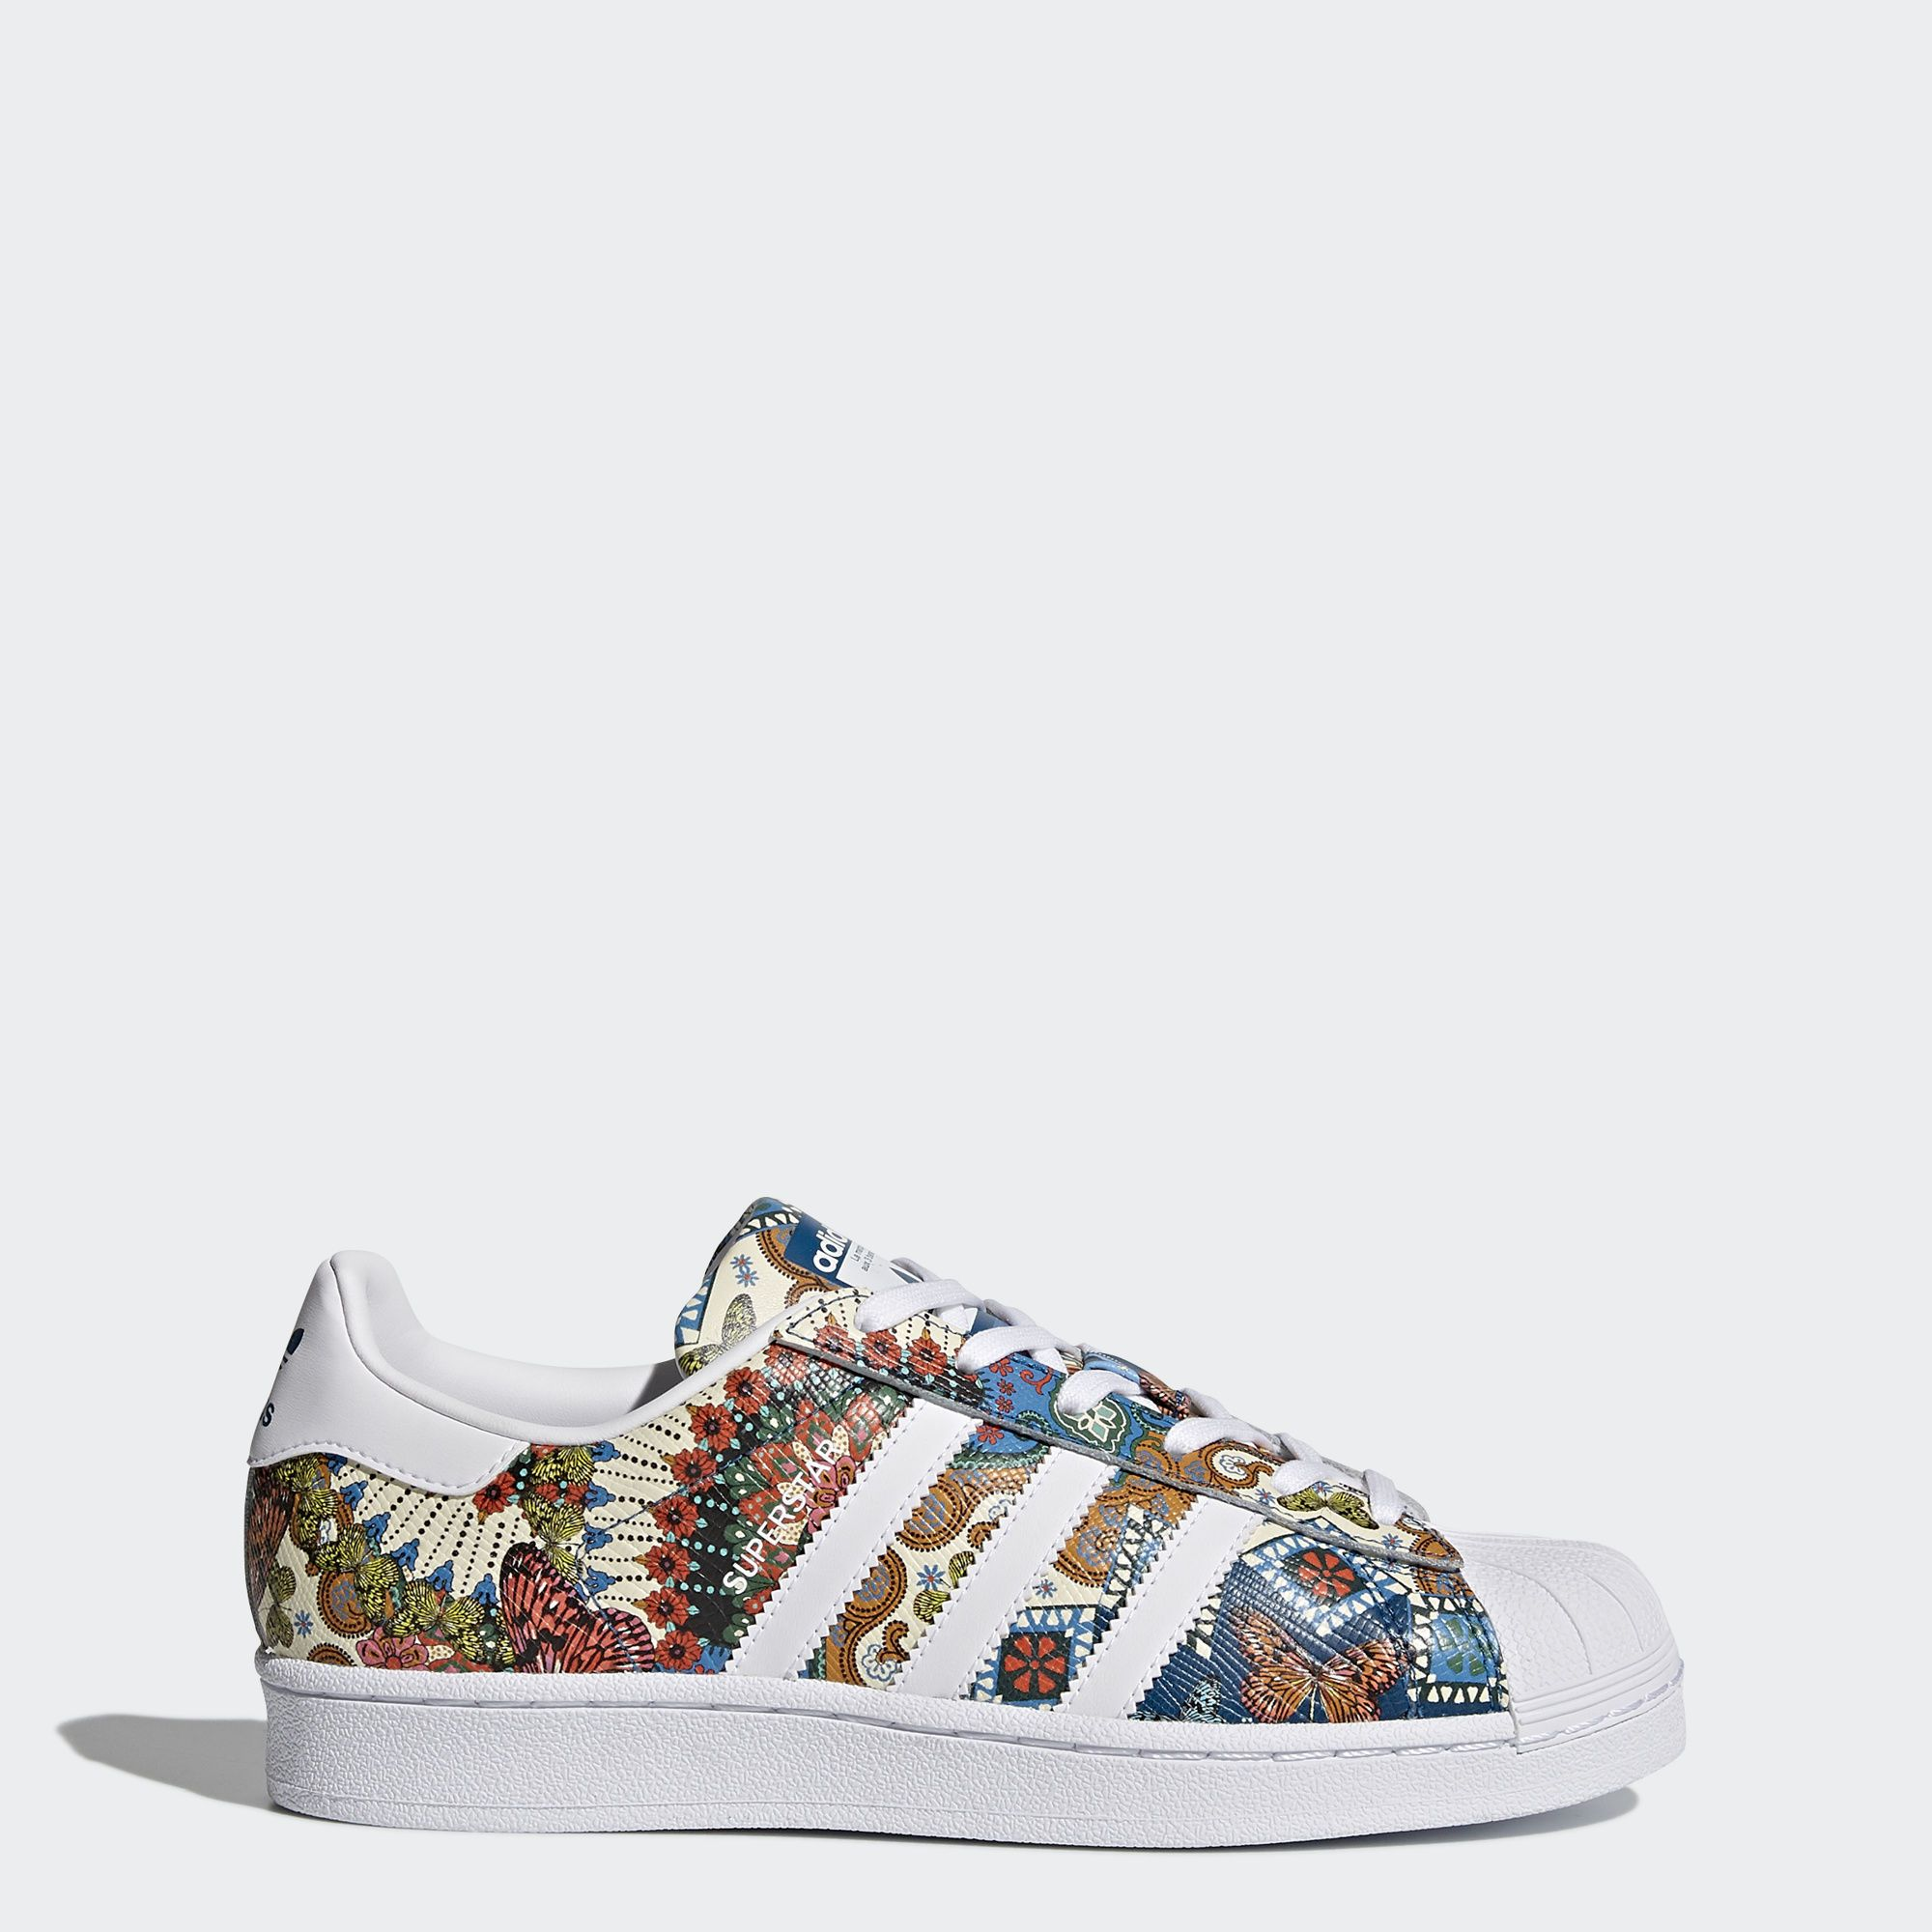 The adidas Superstar shoe travels to the tropics. These ...